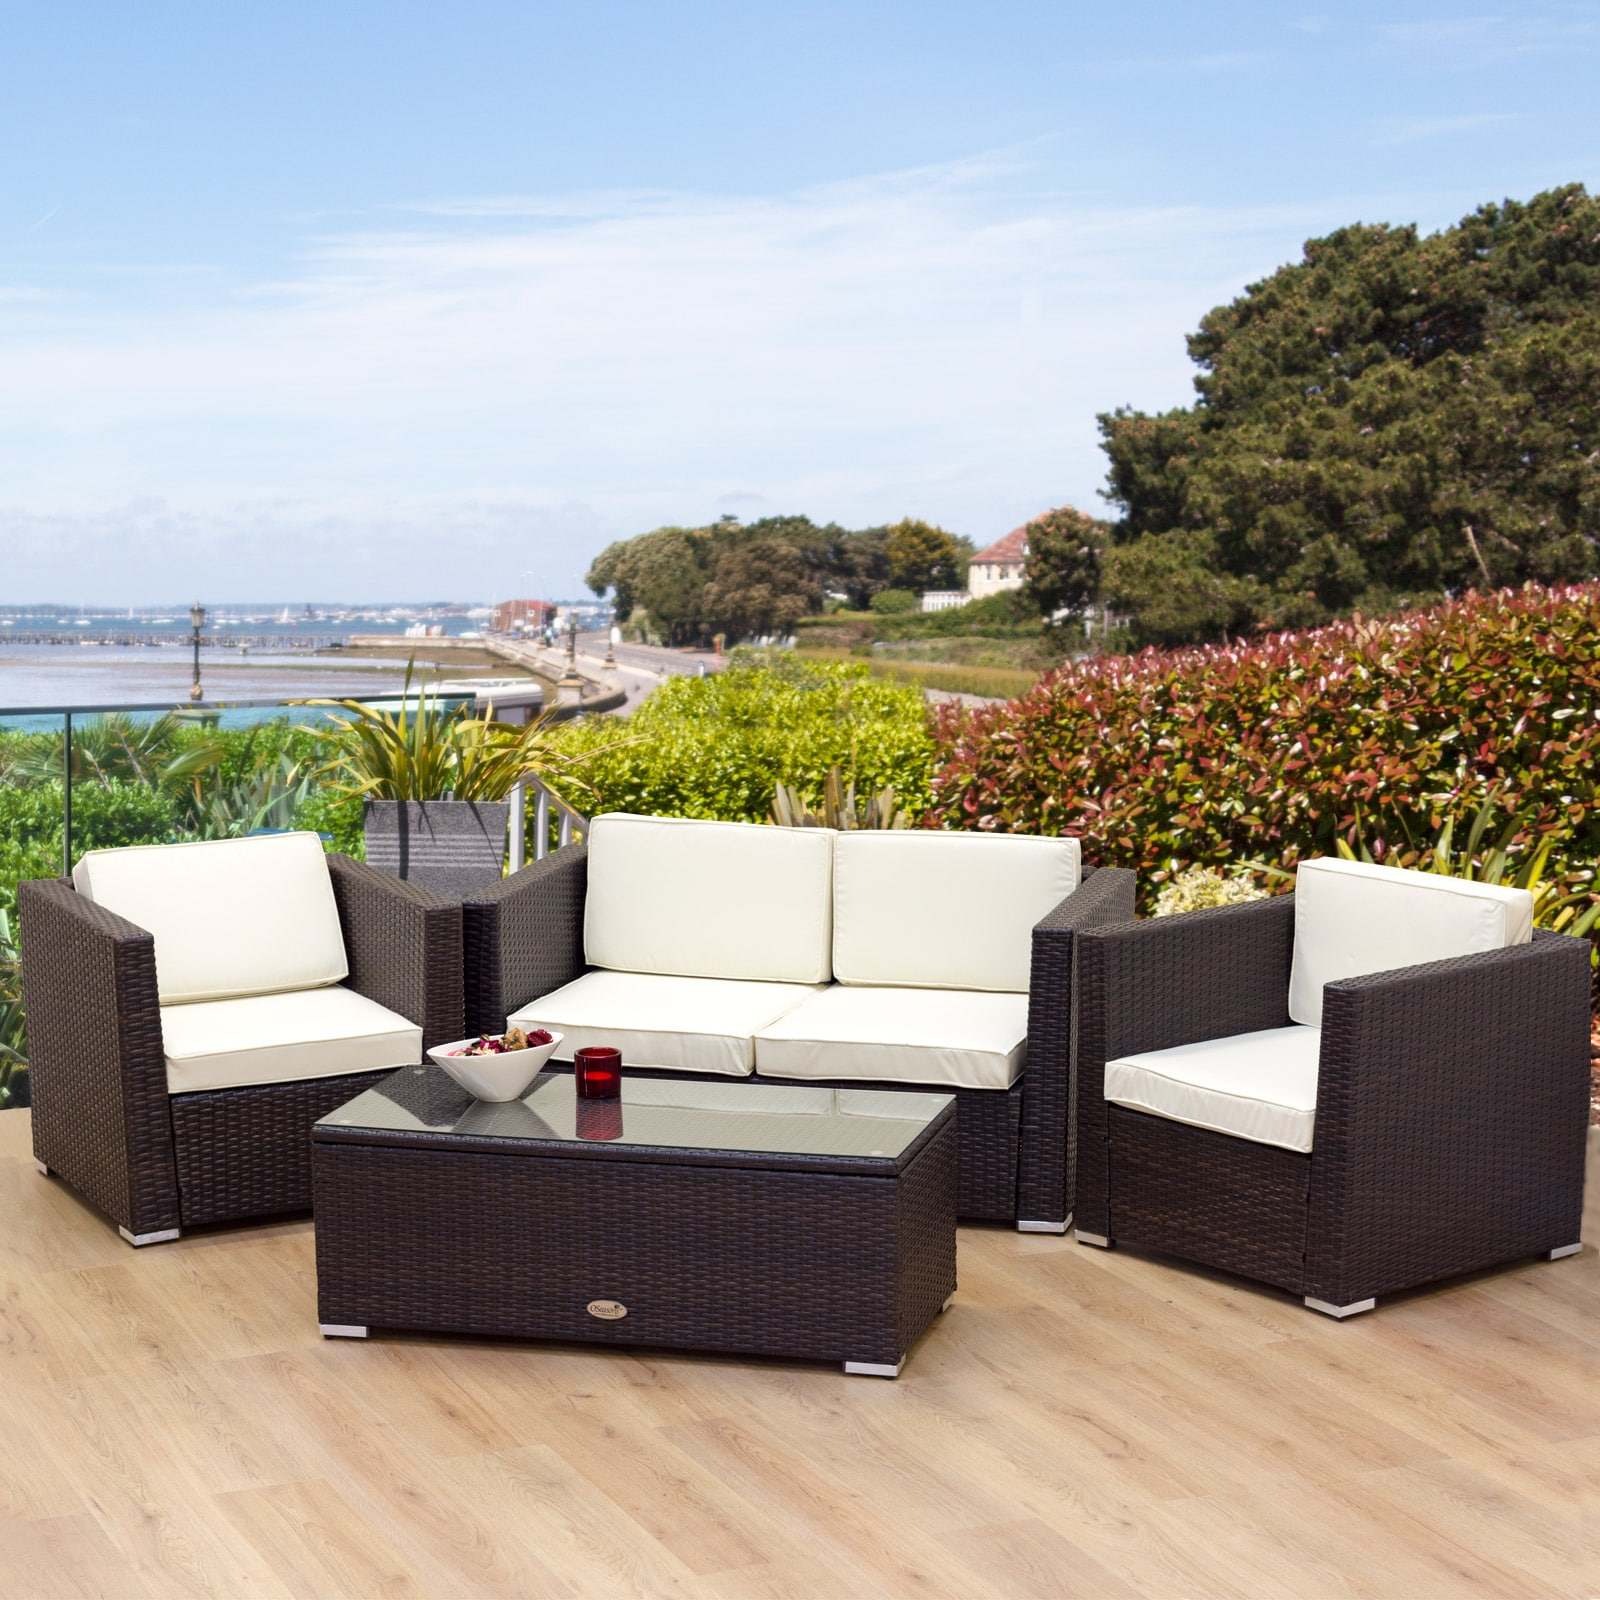 Rattan Outdoor Chairs Part - 33: ... Chairs There Are Just As Many Individual And Small Set Options.  However, As A General Rule When Shopping Rattan Furniture Sets Provide The  Best Value.